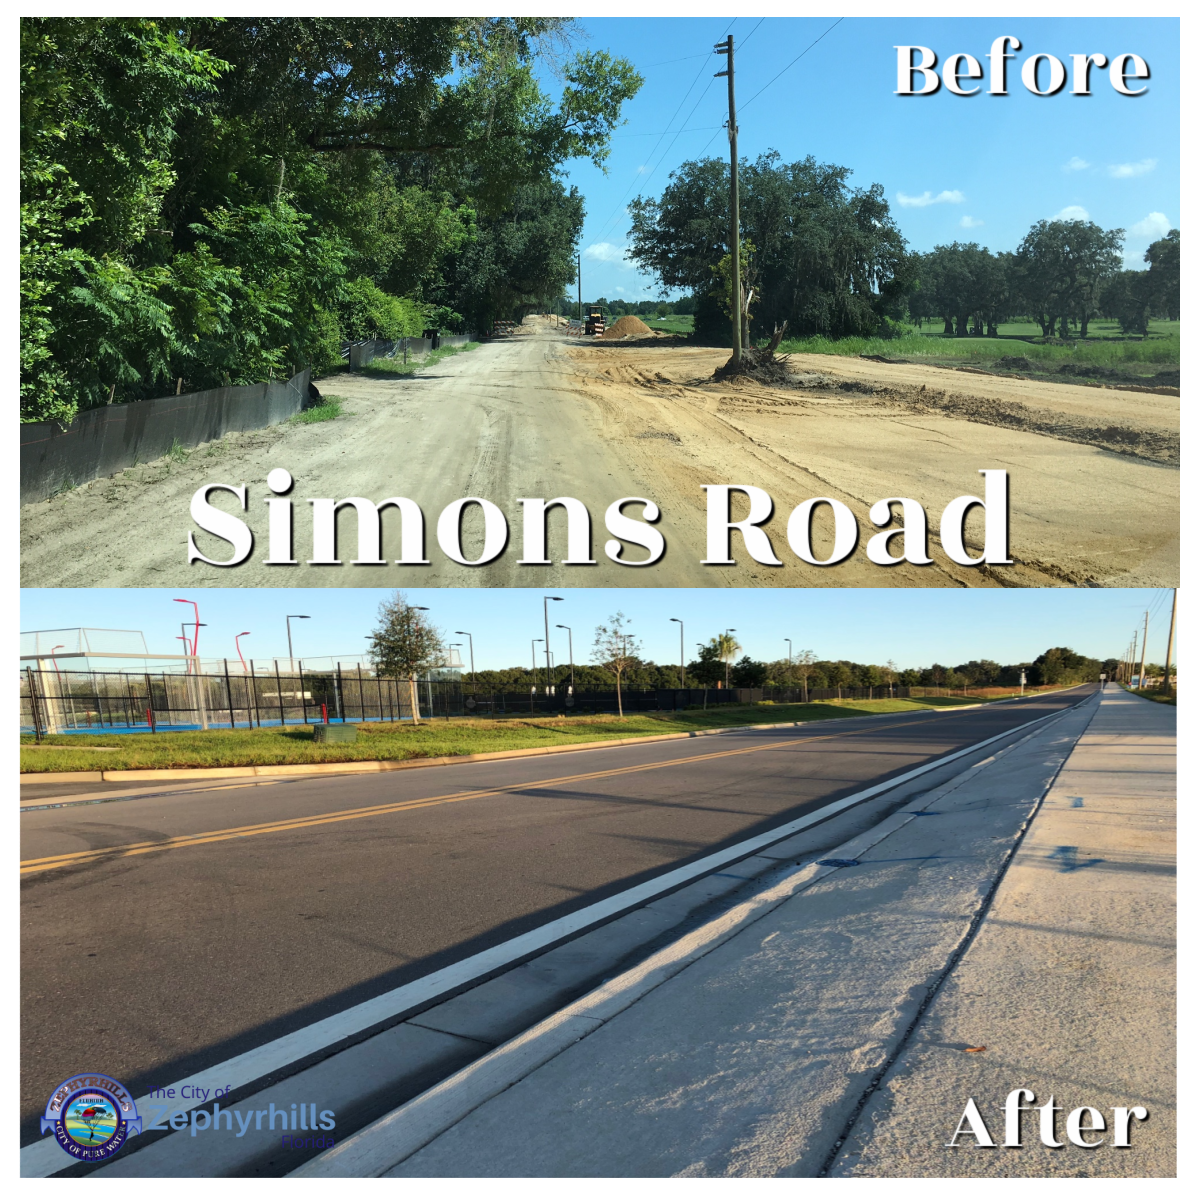 Simons road before and after